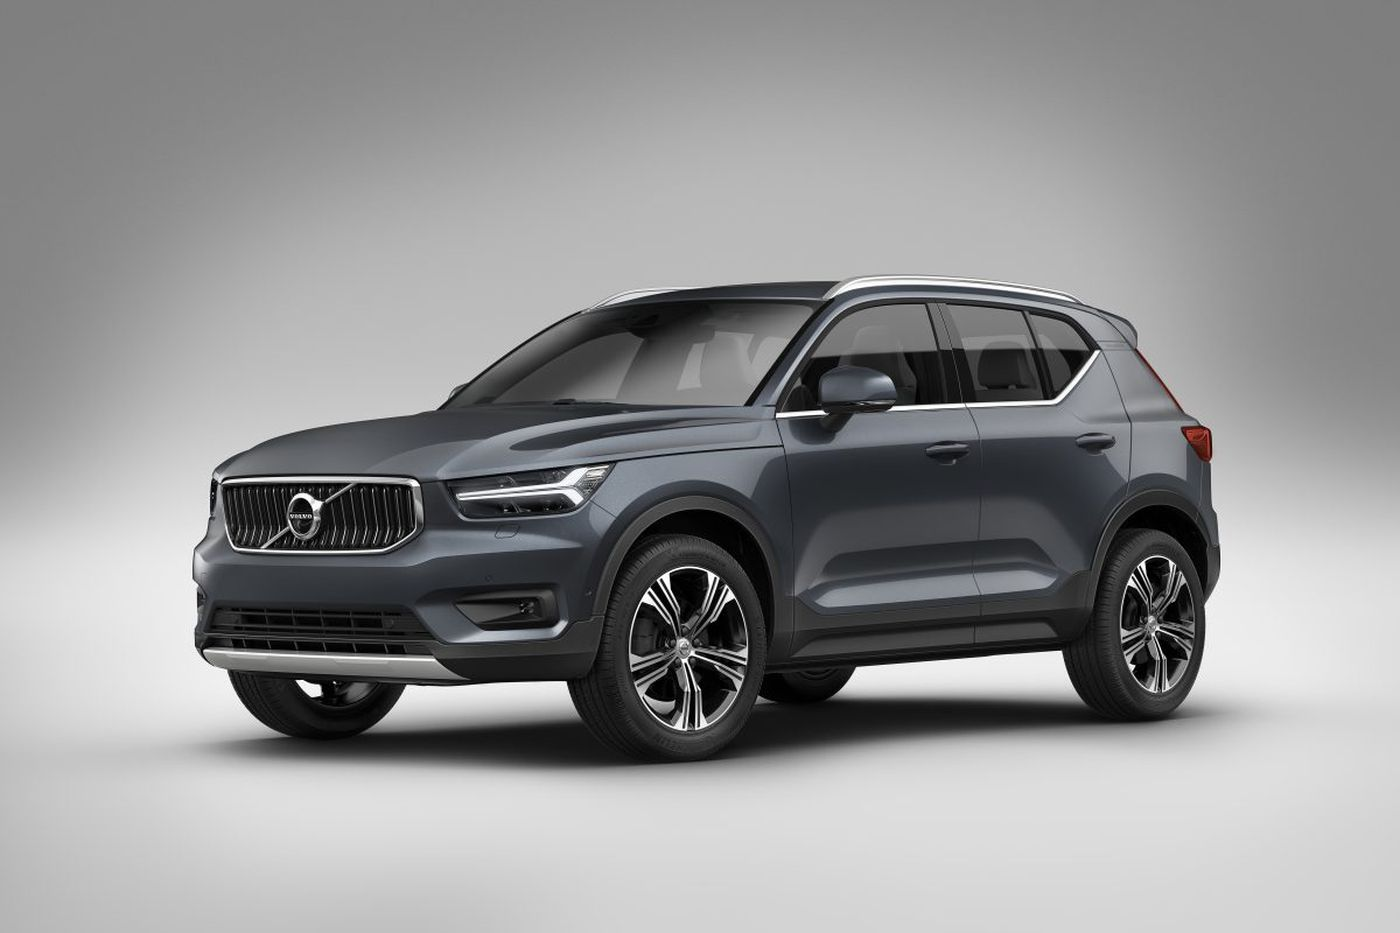 Volvo offers snazzy compact crossover for 2019